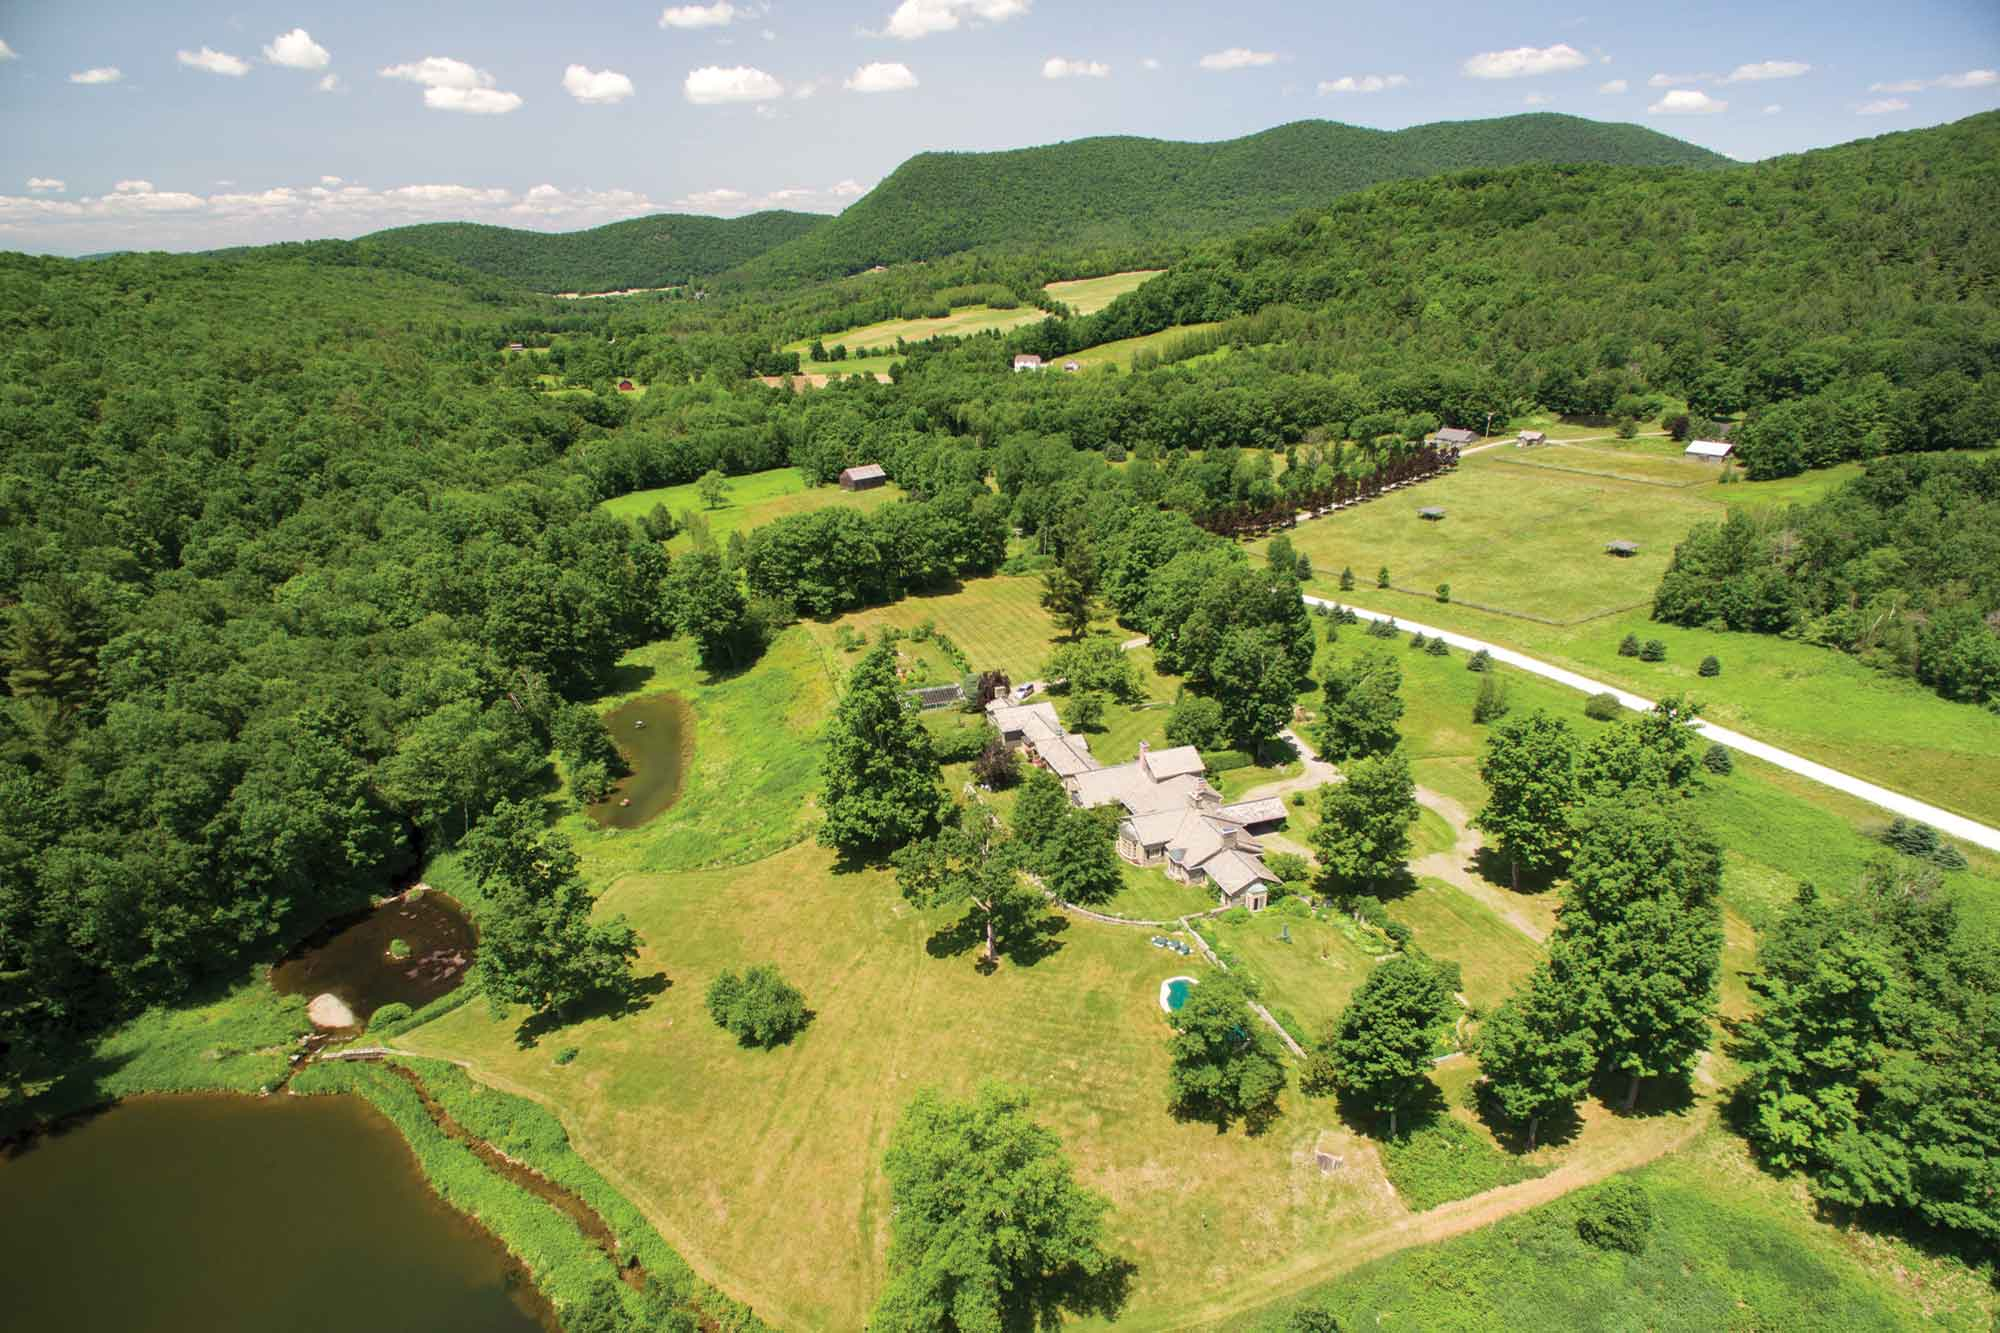 Black Hole Hollow Farm's guest accommodations once hosted royalty (HRH, The Princess Margaret) and cultural icons, including first lady Jackie Kennedy and British novelist Ian Fleming, who wrote <em>Diamonds Are Forever</em> and <em>Goldfinger</em> whilst summering at the estate.